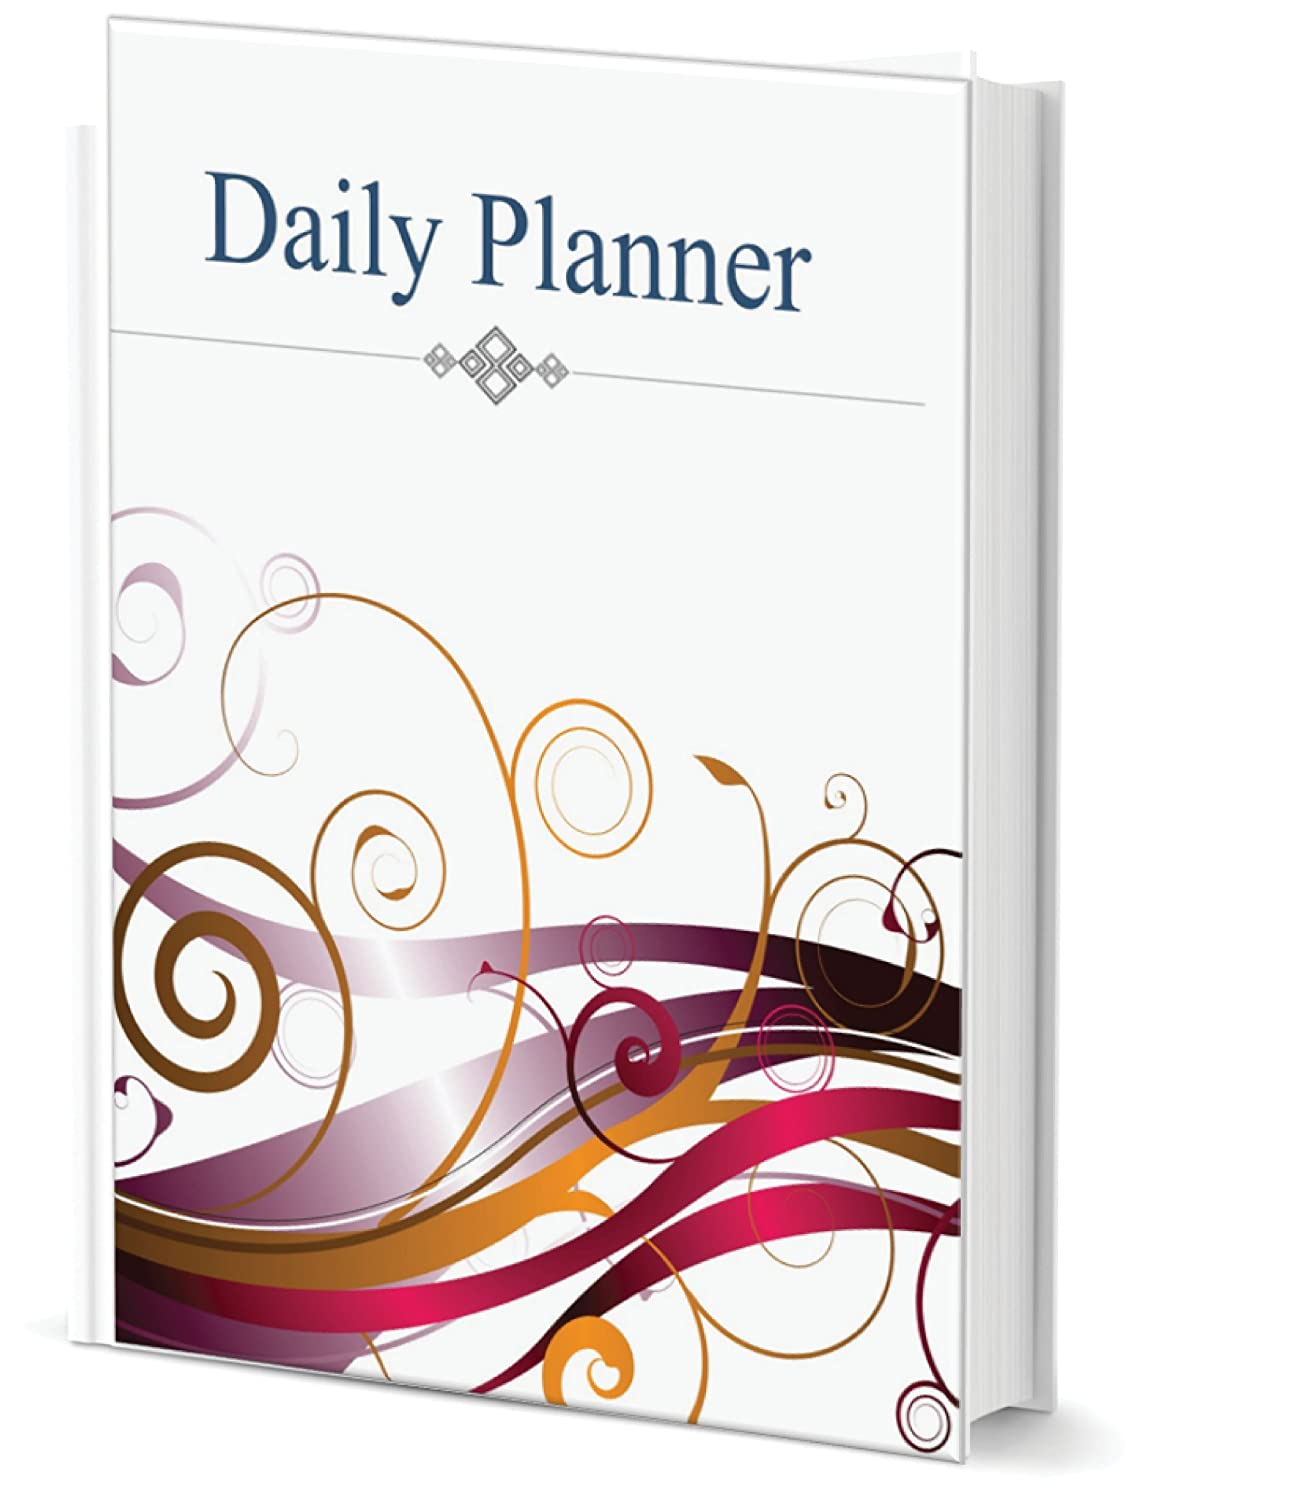 Tools4Wisdom Day Planner Plus Calendar _ April 2013 Through December 2013 _ 355 Pages _ Yearly Monthly and Daily Planning at Sears.com